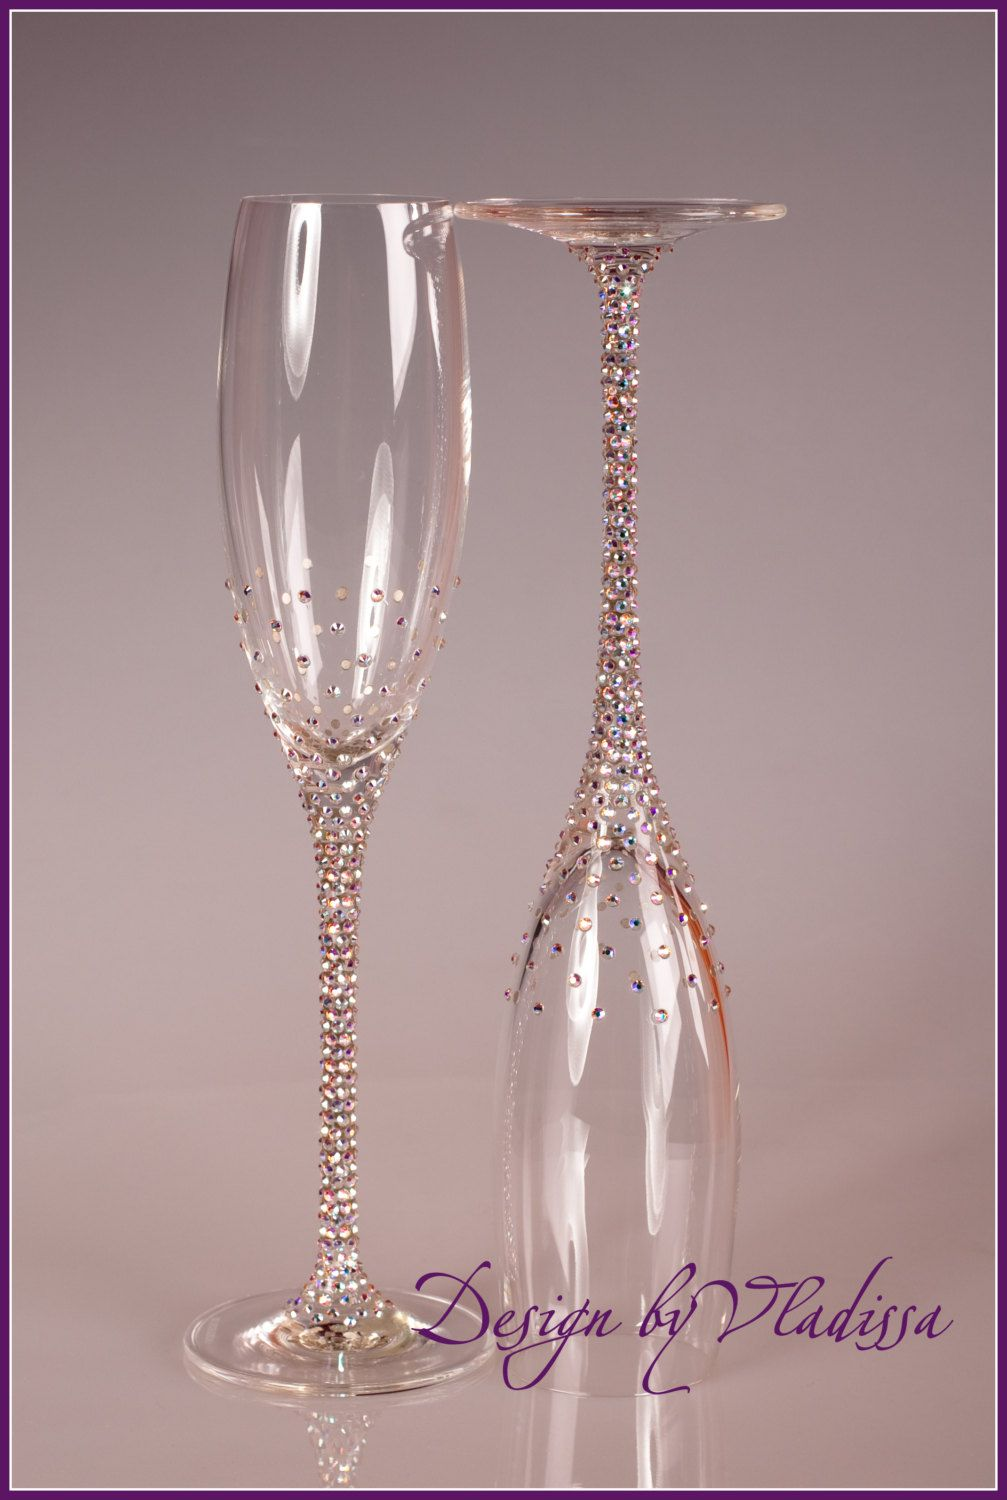 Swarovski Champagne Flutes I Feel Like Could Do This Myself